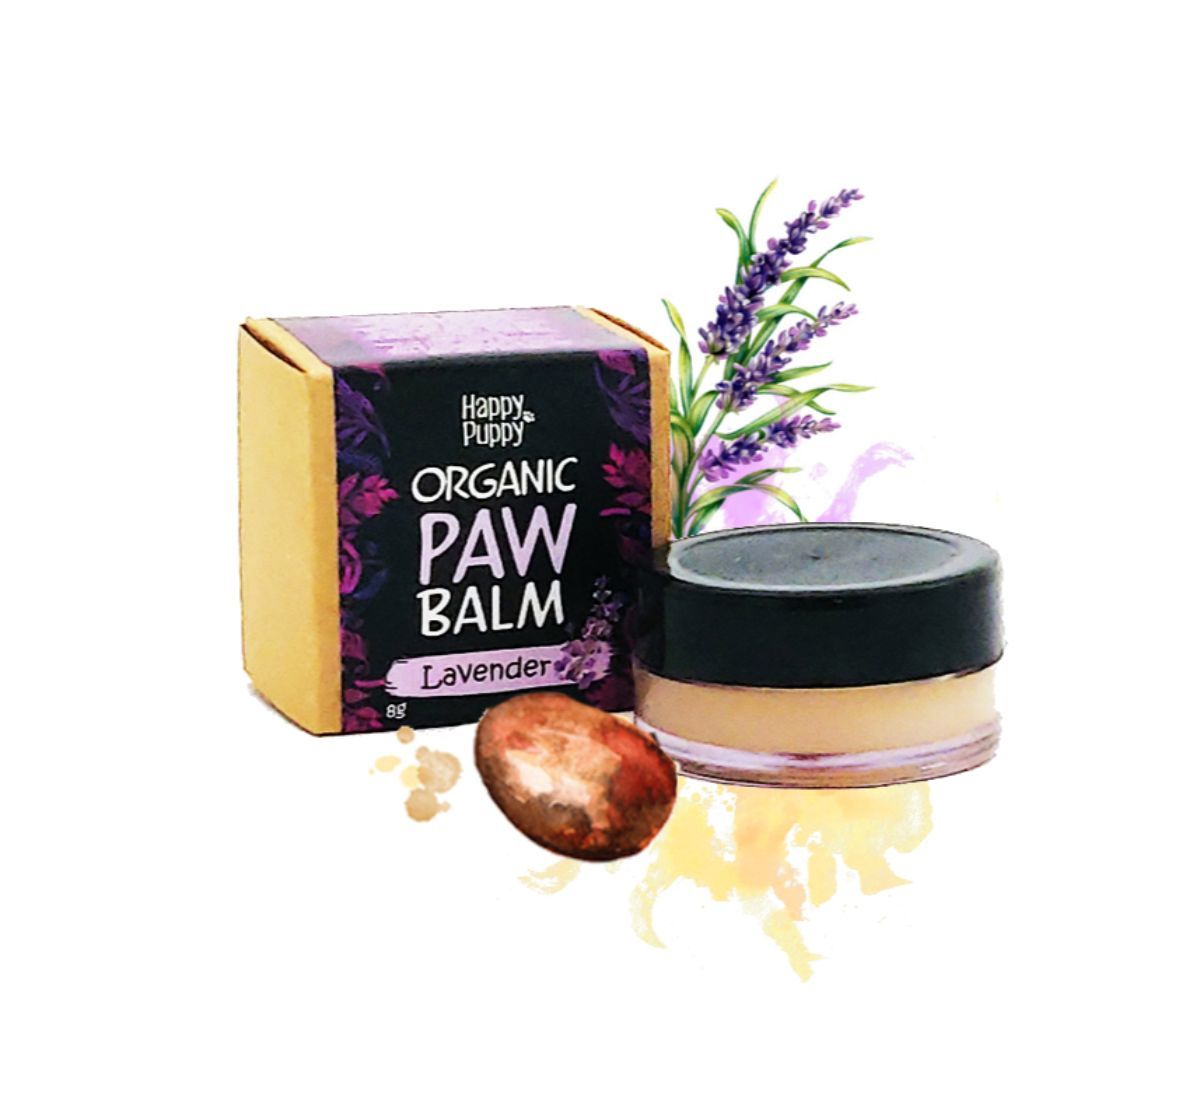 Happy Puppy Organics Paw Balm- 8gm